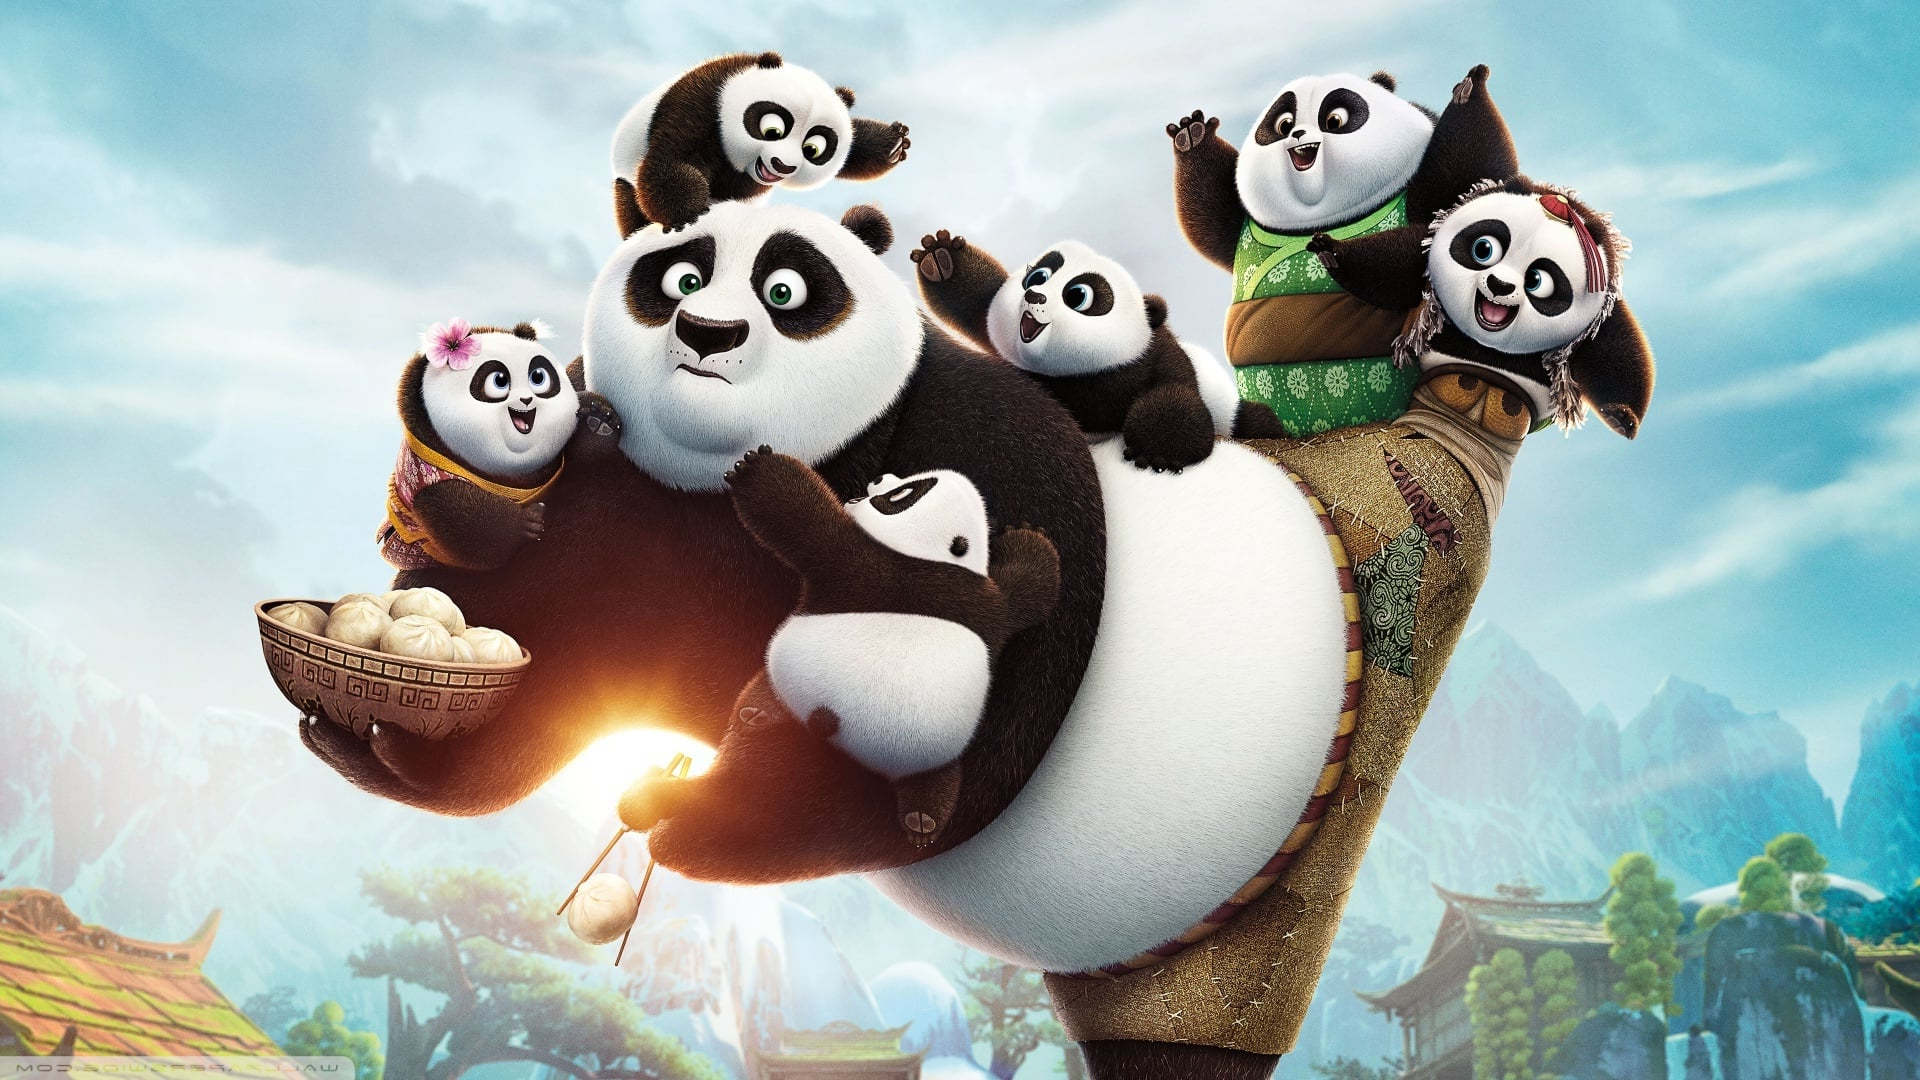 Kung fu panda 3 film photos